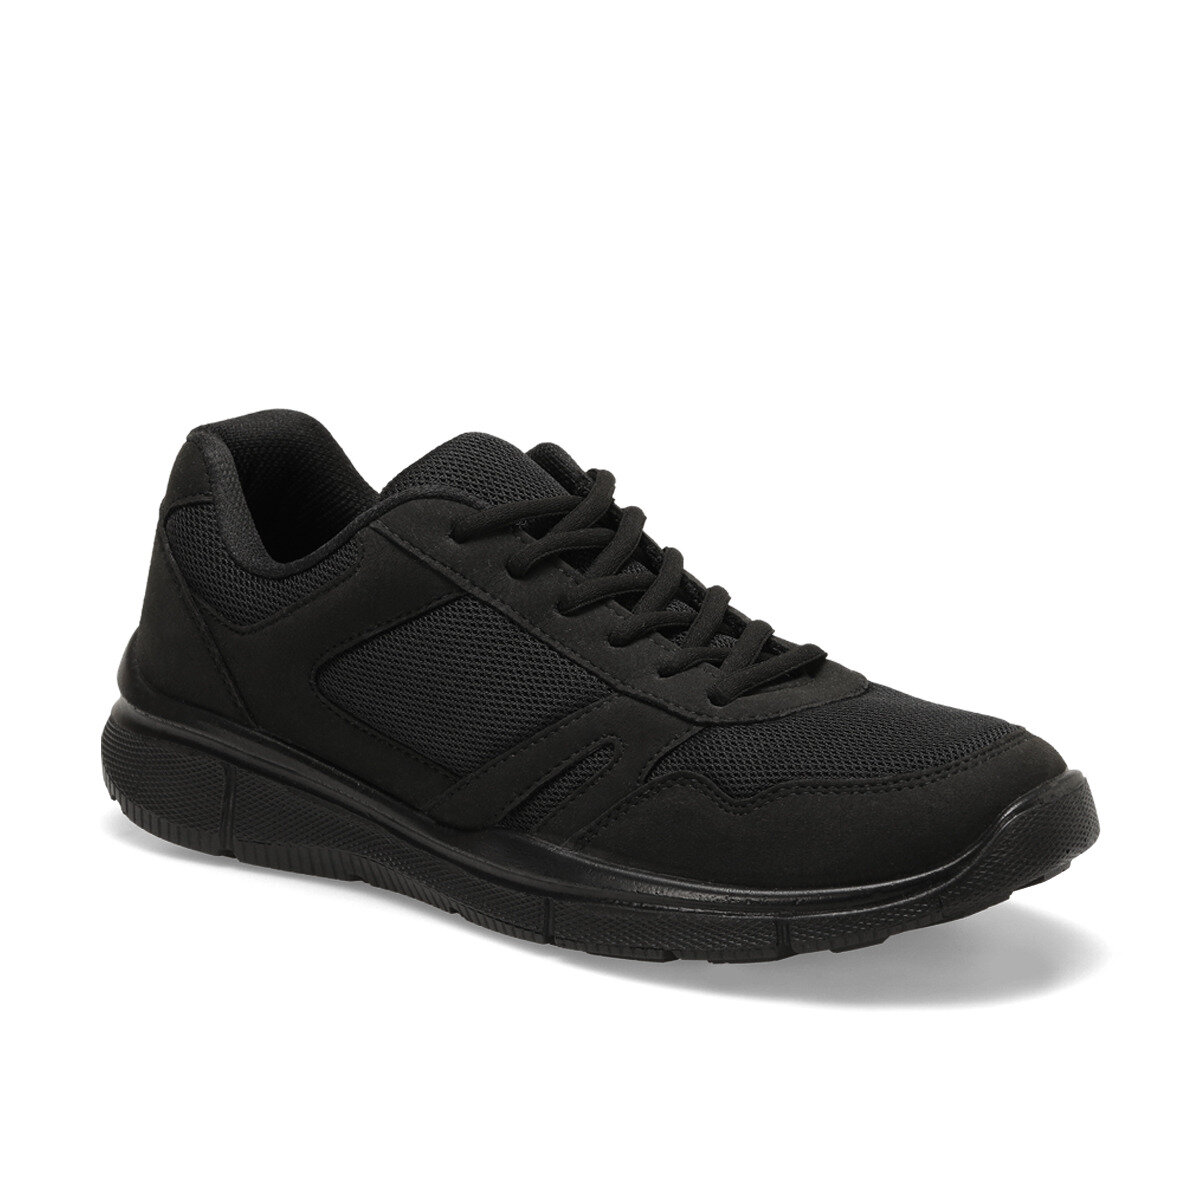 FLO 19015 Black Male Sports Shoes Panama Club